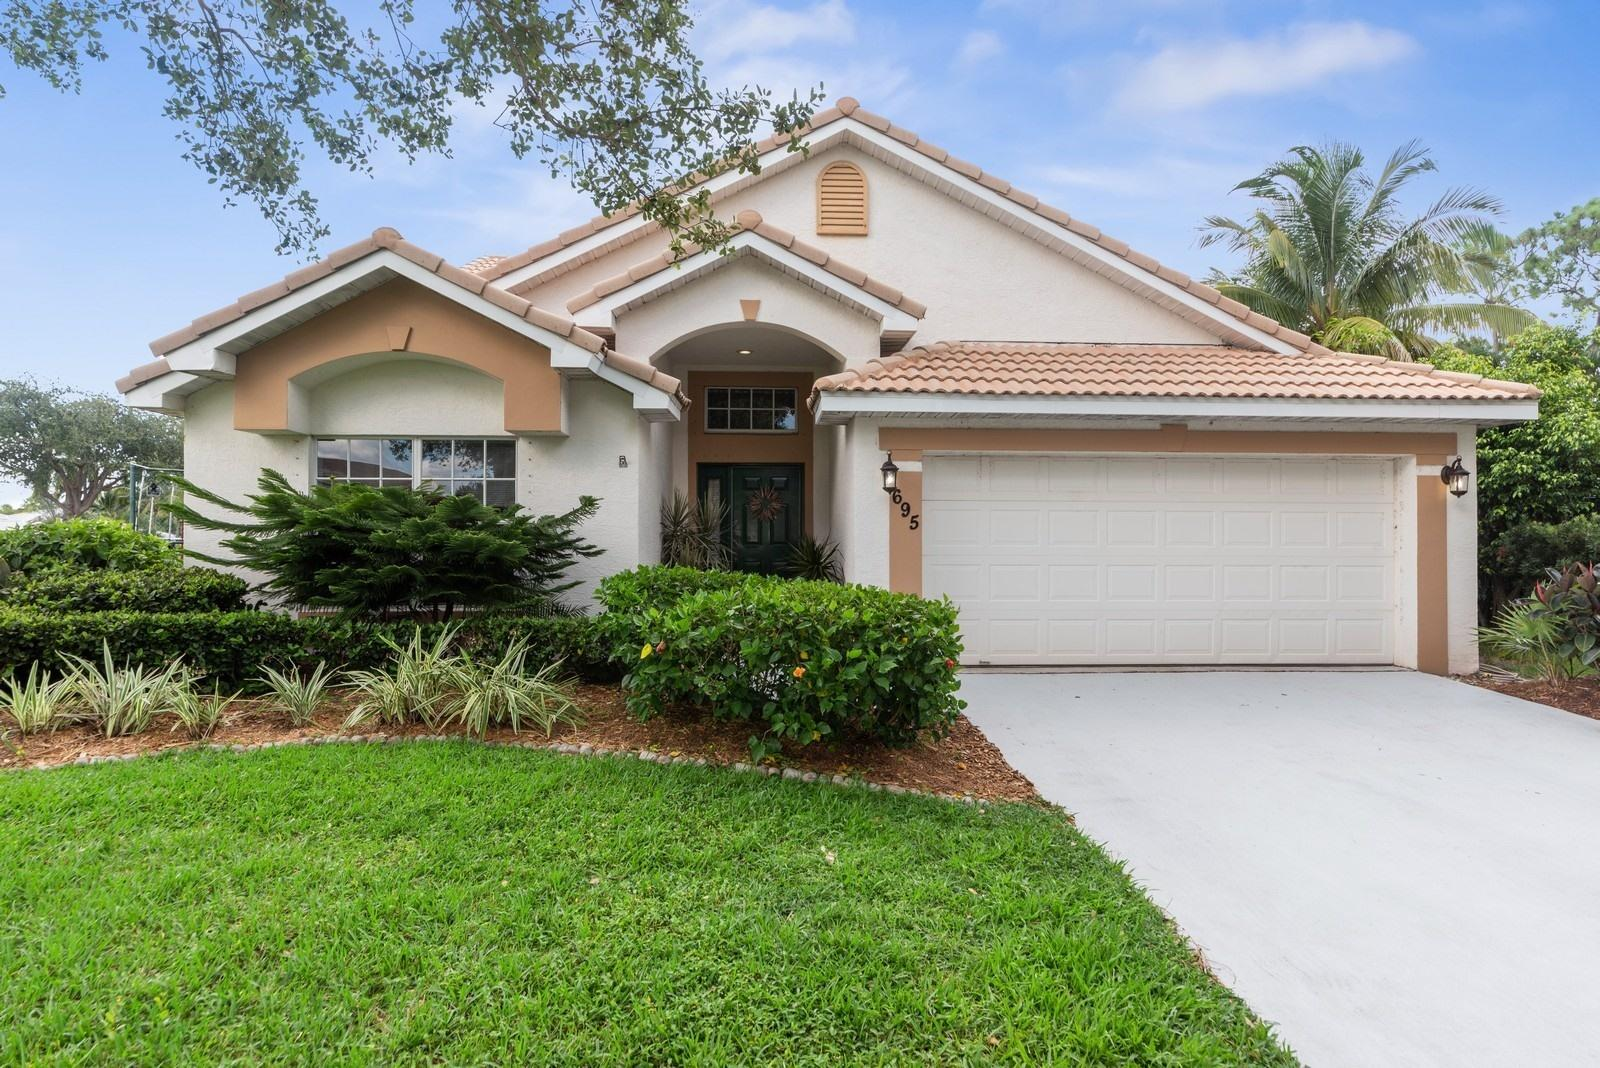 695 Enfield Court, Delray Beach, Florida 33444, 4 Bedrooms Bedrooms, ,3 BathroomsBathrooms,Single Family Detached,For Sale,Enfield,RX-10553910